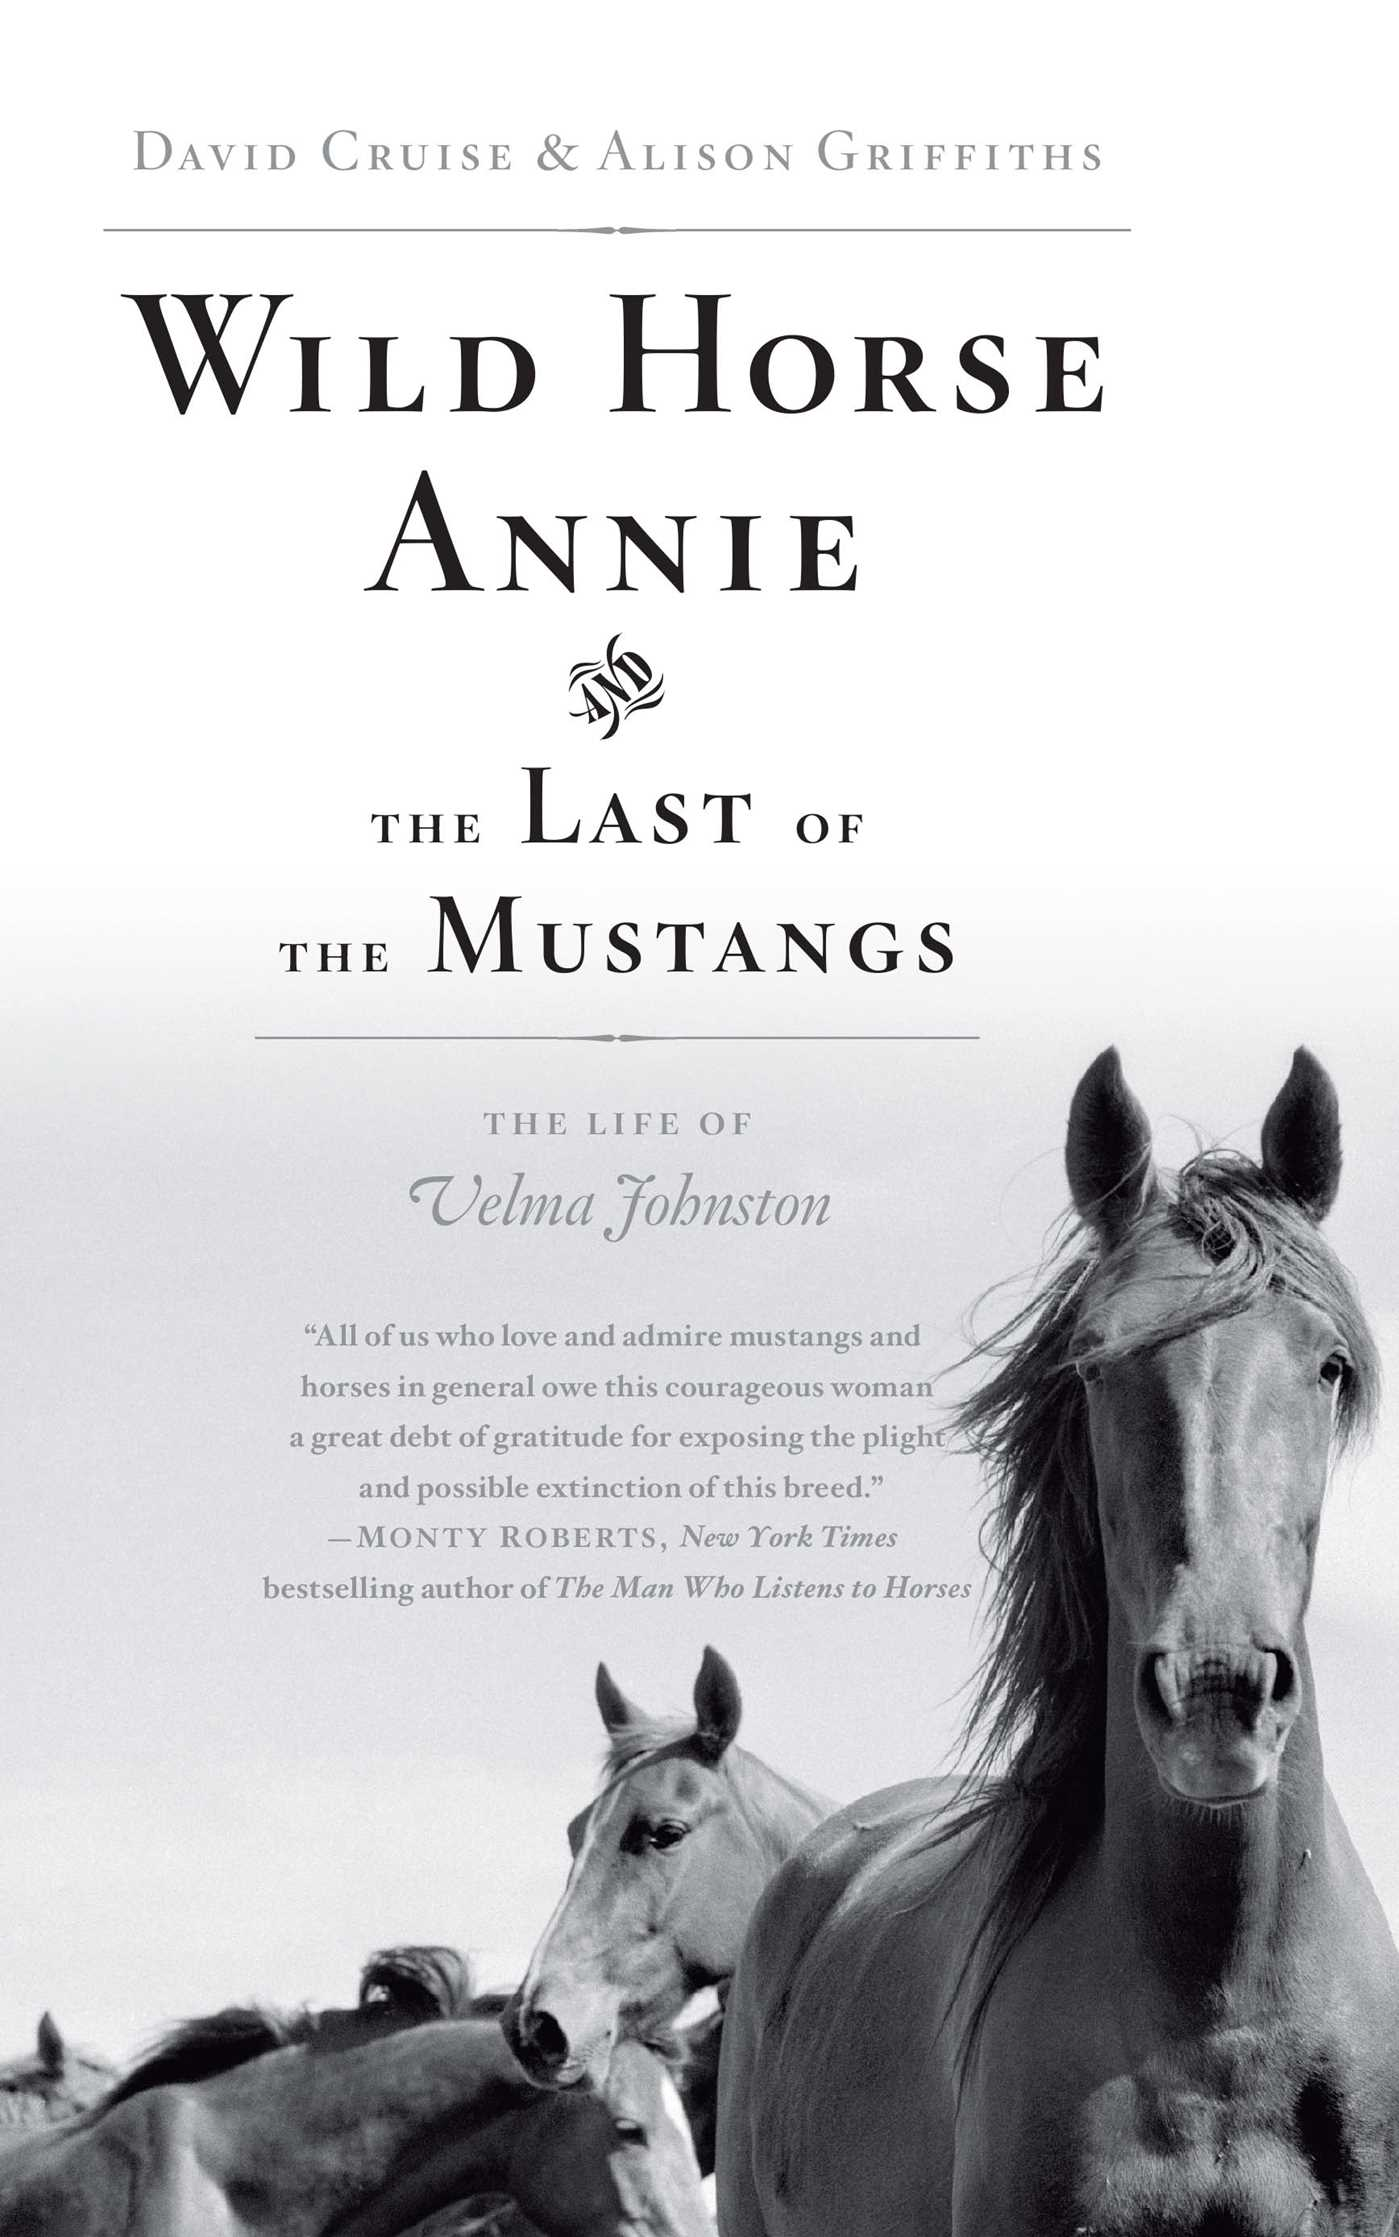 Wild-horse-annie-and-the-last-of-the-mustangs-9781416553366_hr